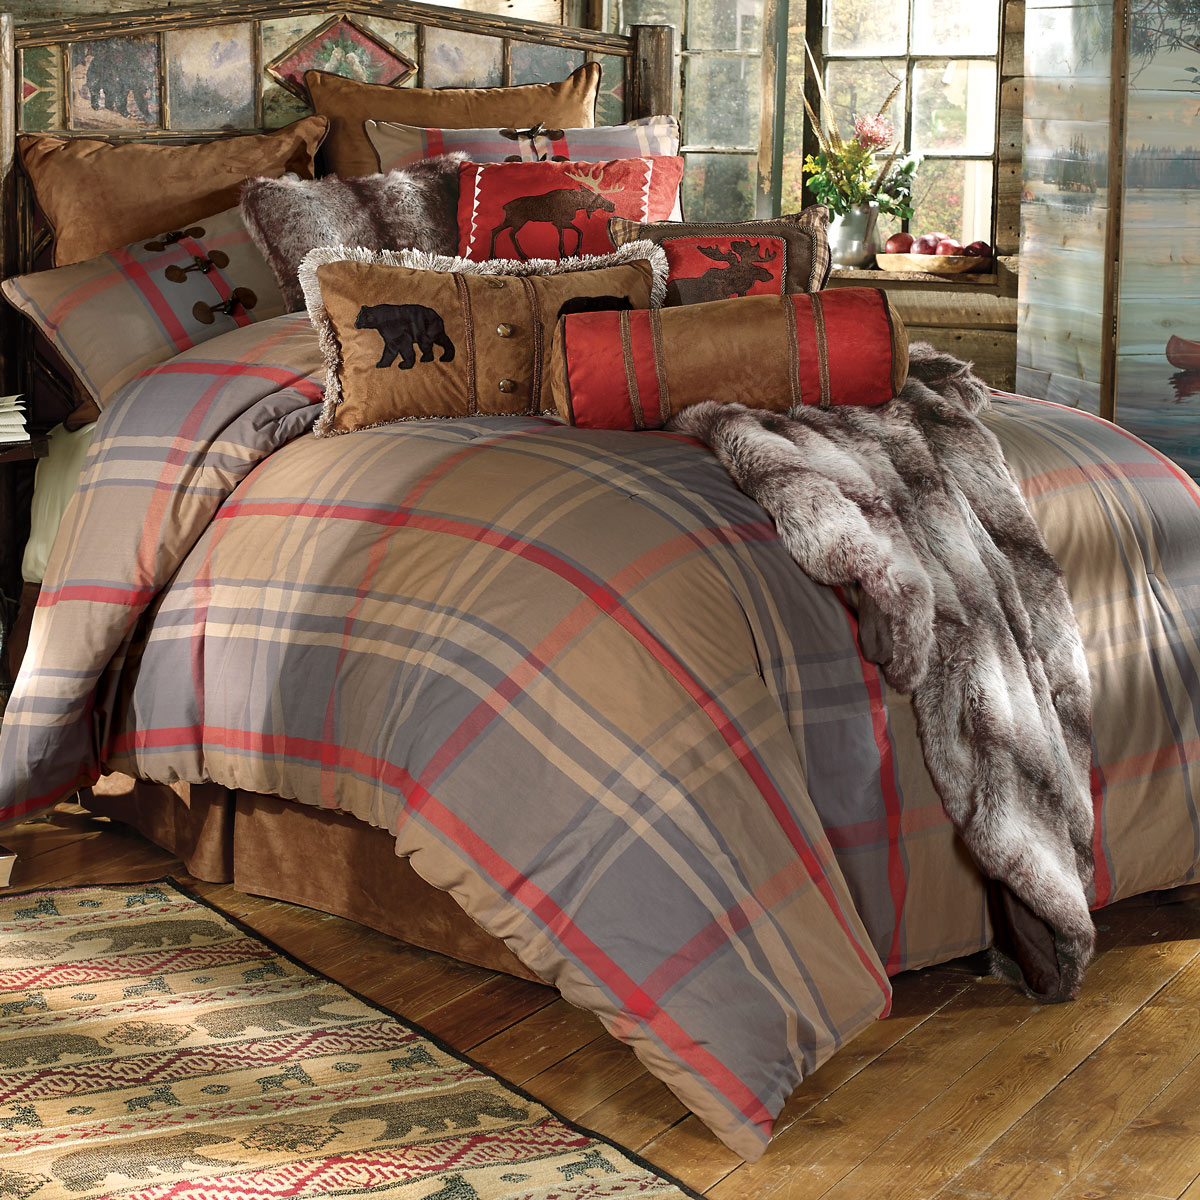 Classy plaid comforter with rugs and wooden floor plus headboard and sidetable also pillows